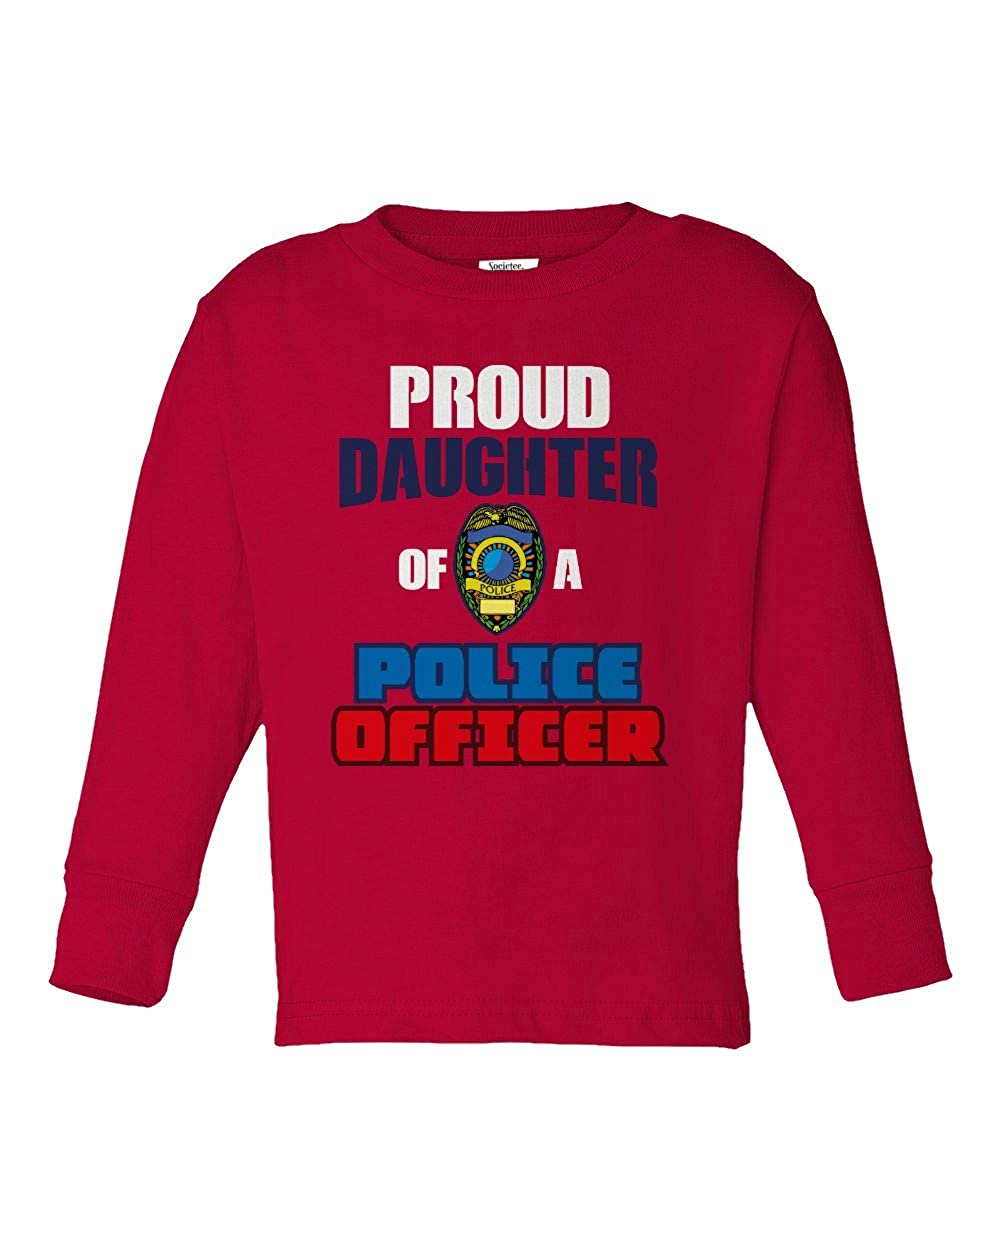 Societee Proud Daughter of a Police Officer Girls Toddler Long Sleeve T-Shirt